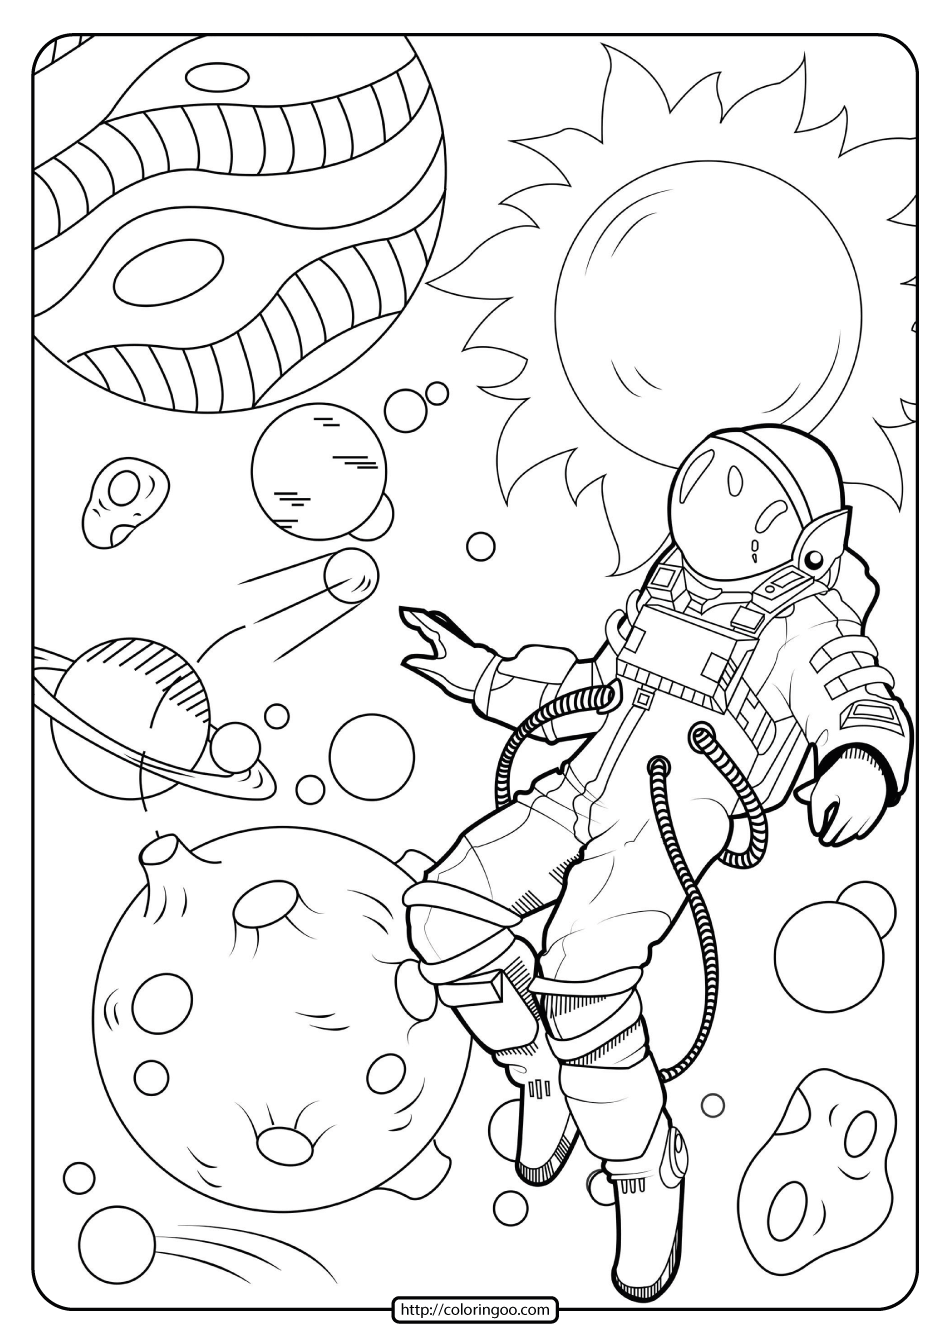 space coloring pages to print space shuttle coloring page tim39s printables print pages space coloring to